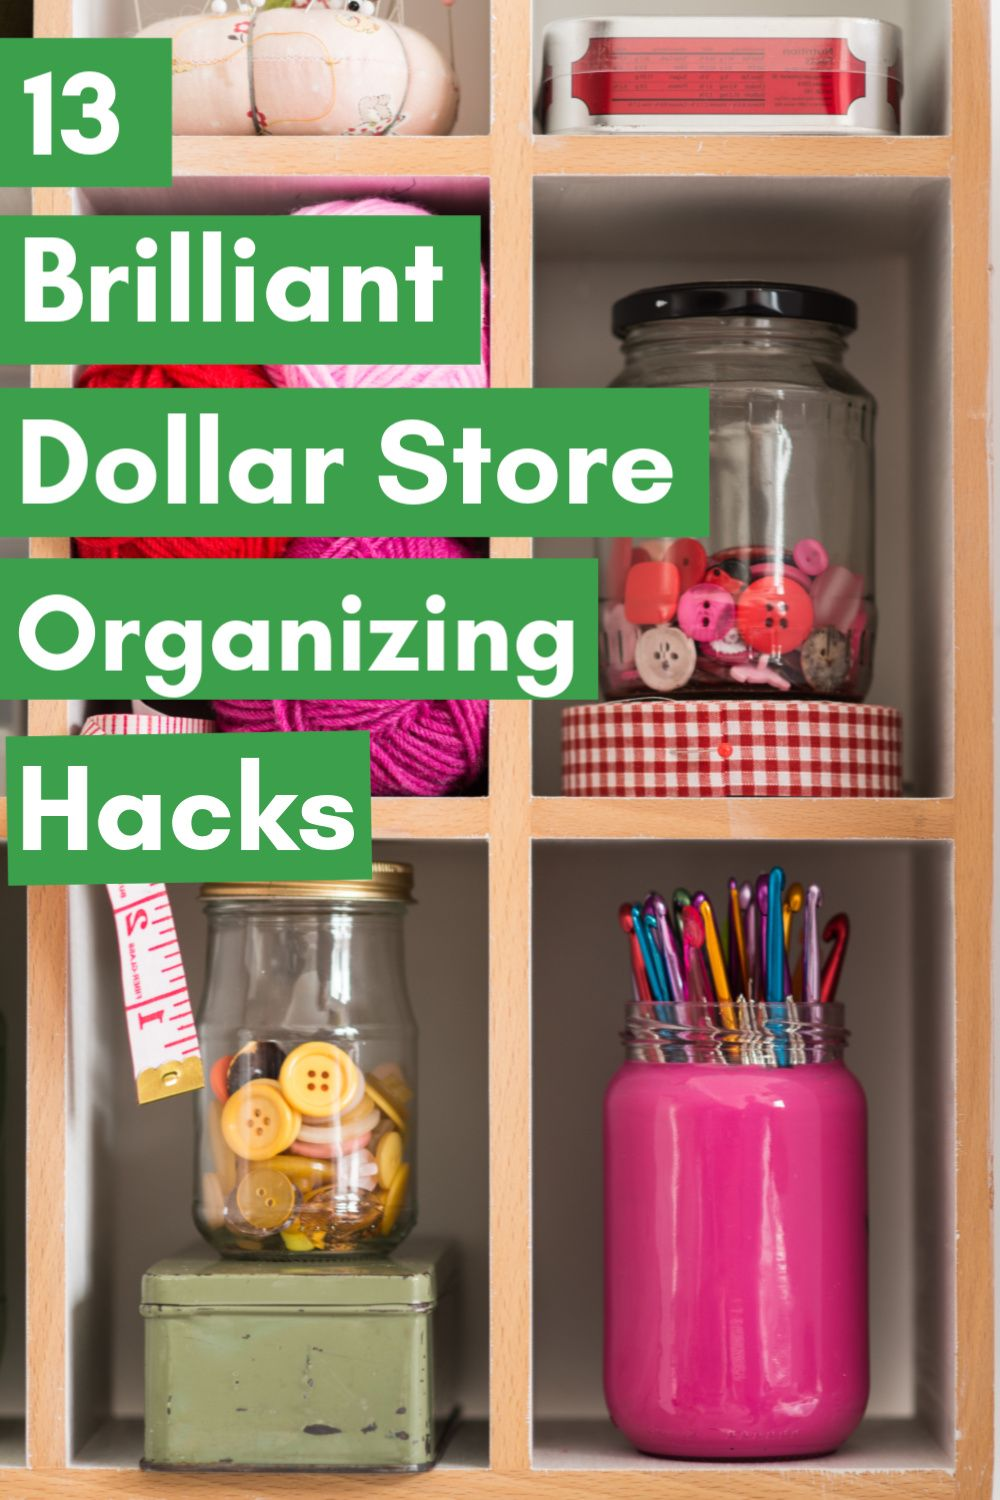 Organize Your Whole House With Dollar Tree Organizing Dollar Tree Organization Organizing Hacks Dollar Stores Dollar Store Organizing